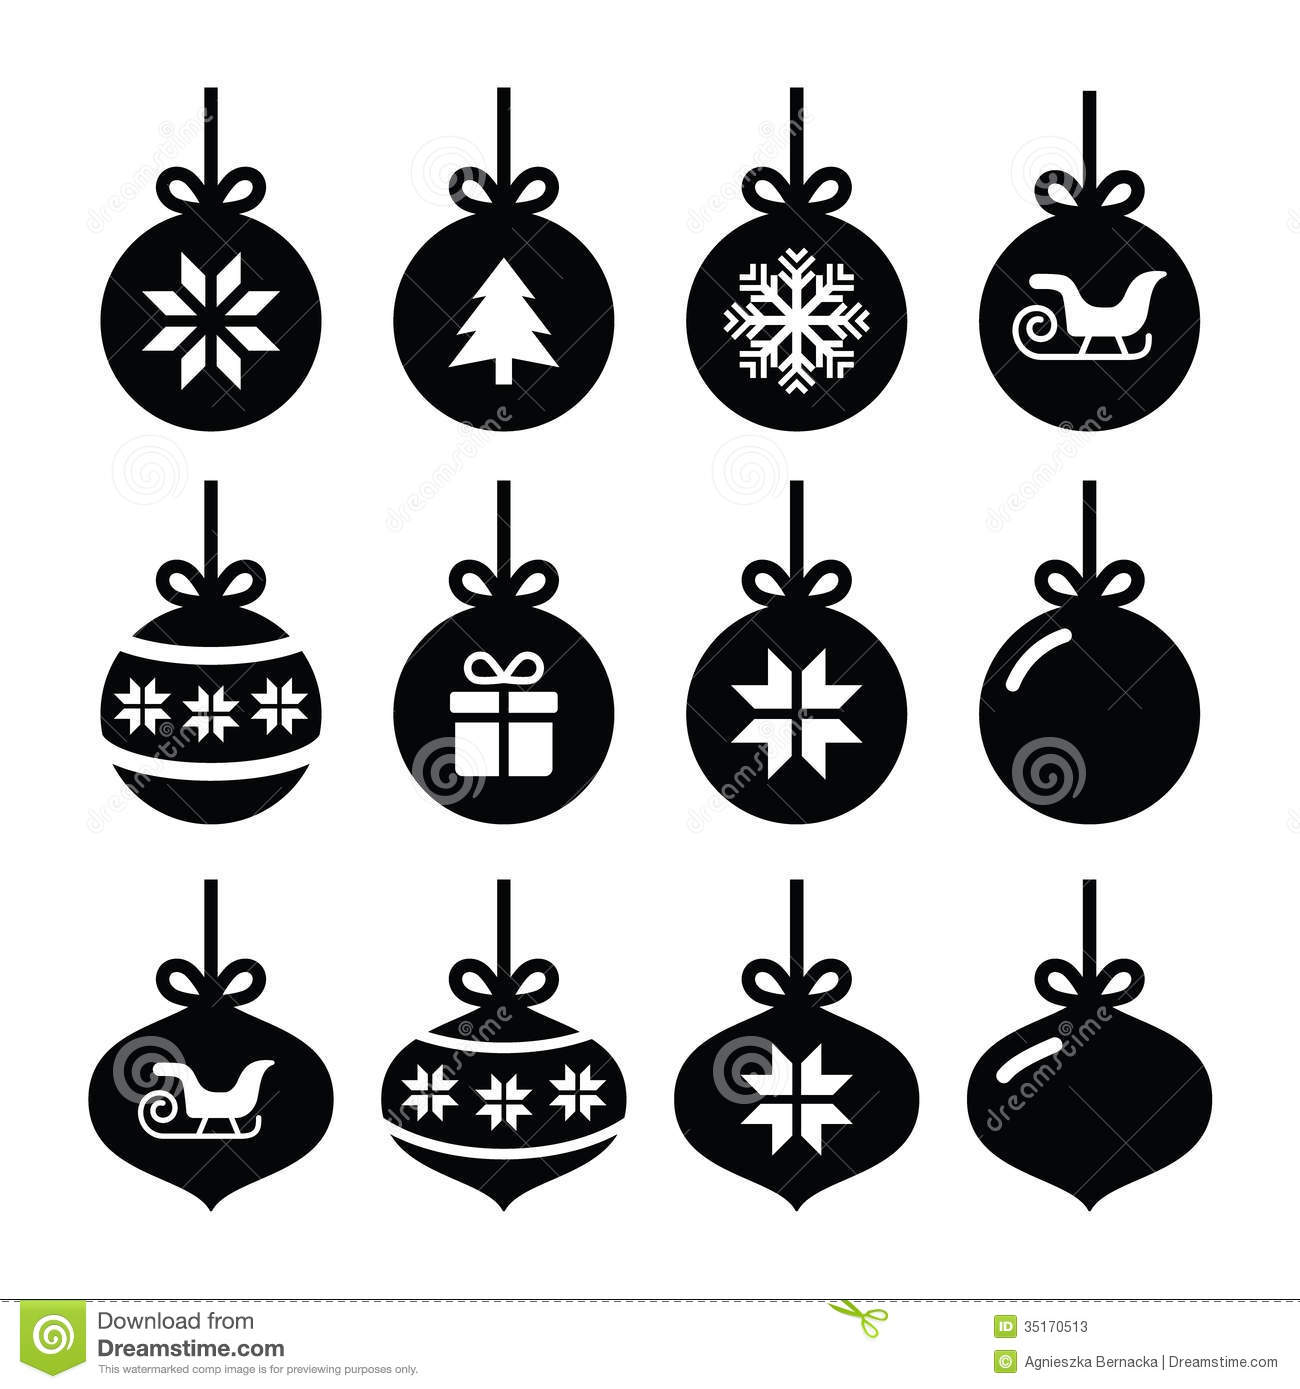 bedtpulriosimp.cf artificial Christmas trees for sale, Christmas lights for sale and wedding lights. Christmas decorations for sale and Christmas ornaments.